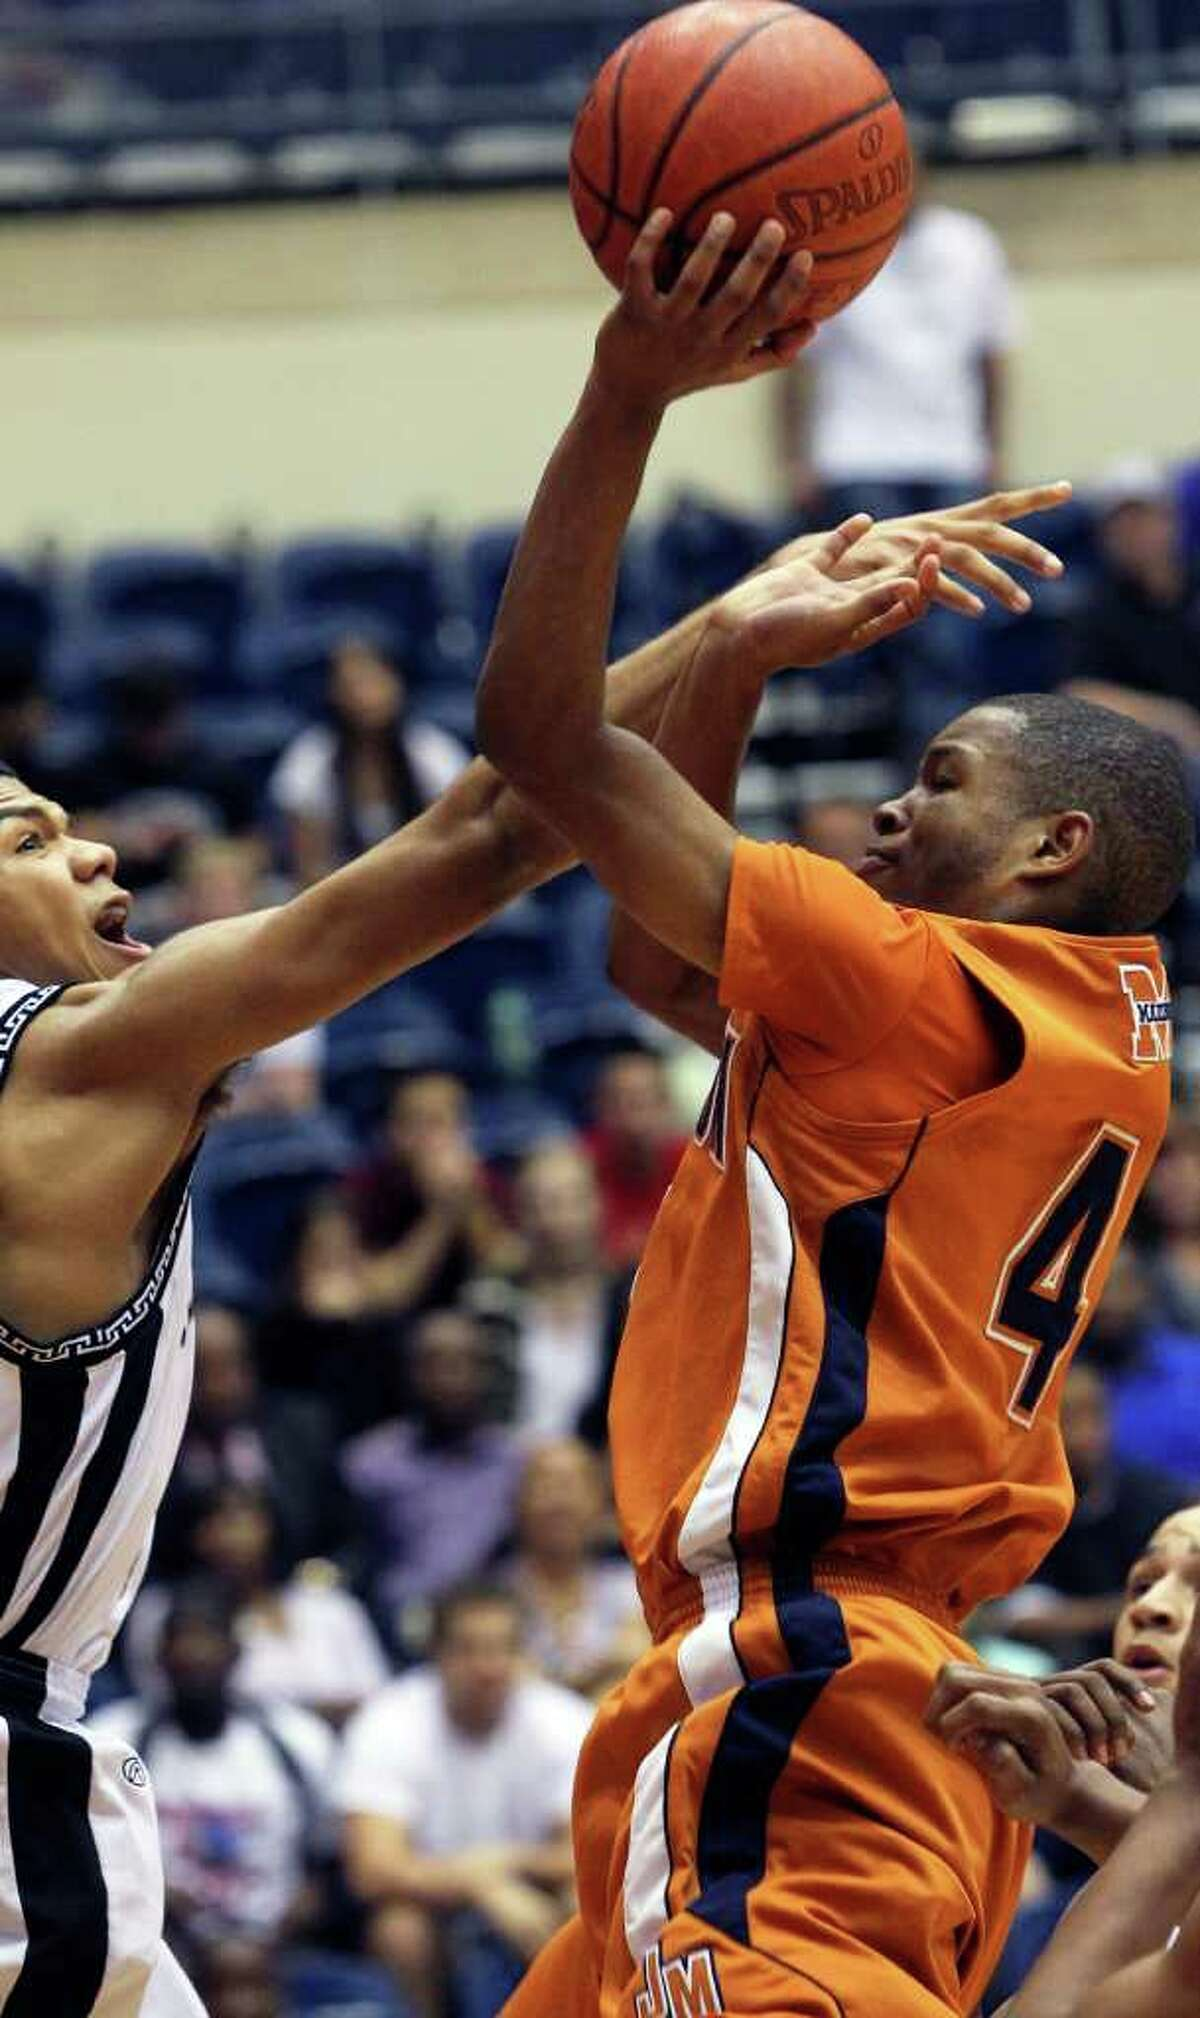 SPORTS Madison guard Byron Daniels shoots through tough defense by Niko Maxwell as Clark beats Madison 49-37 in 5A boys basketball playoffs at the UTSA Convocation Center on February 24, 2011. Tom Reel/Staff